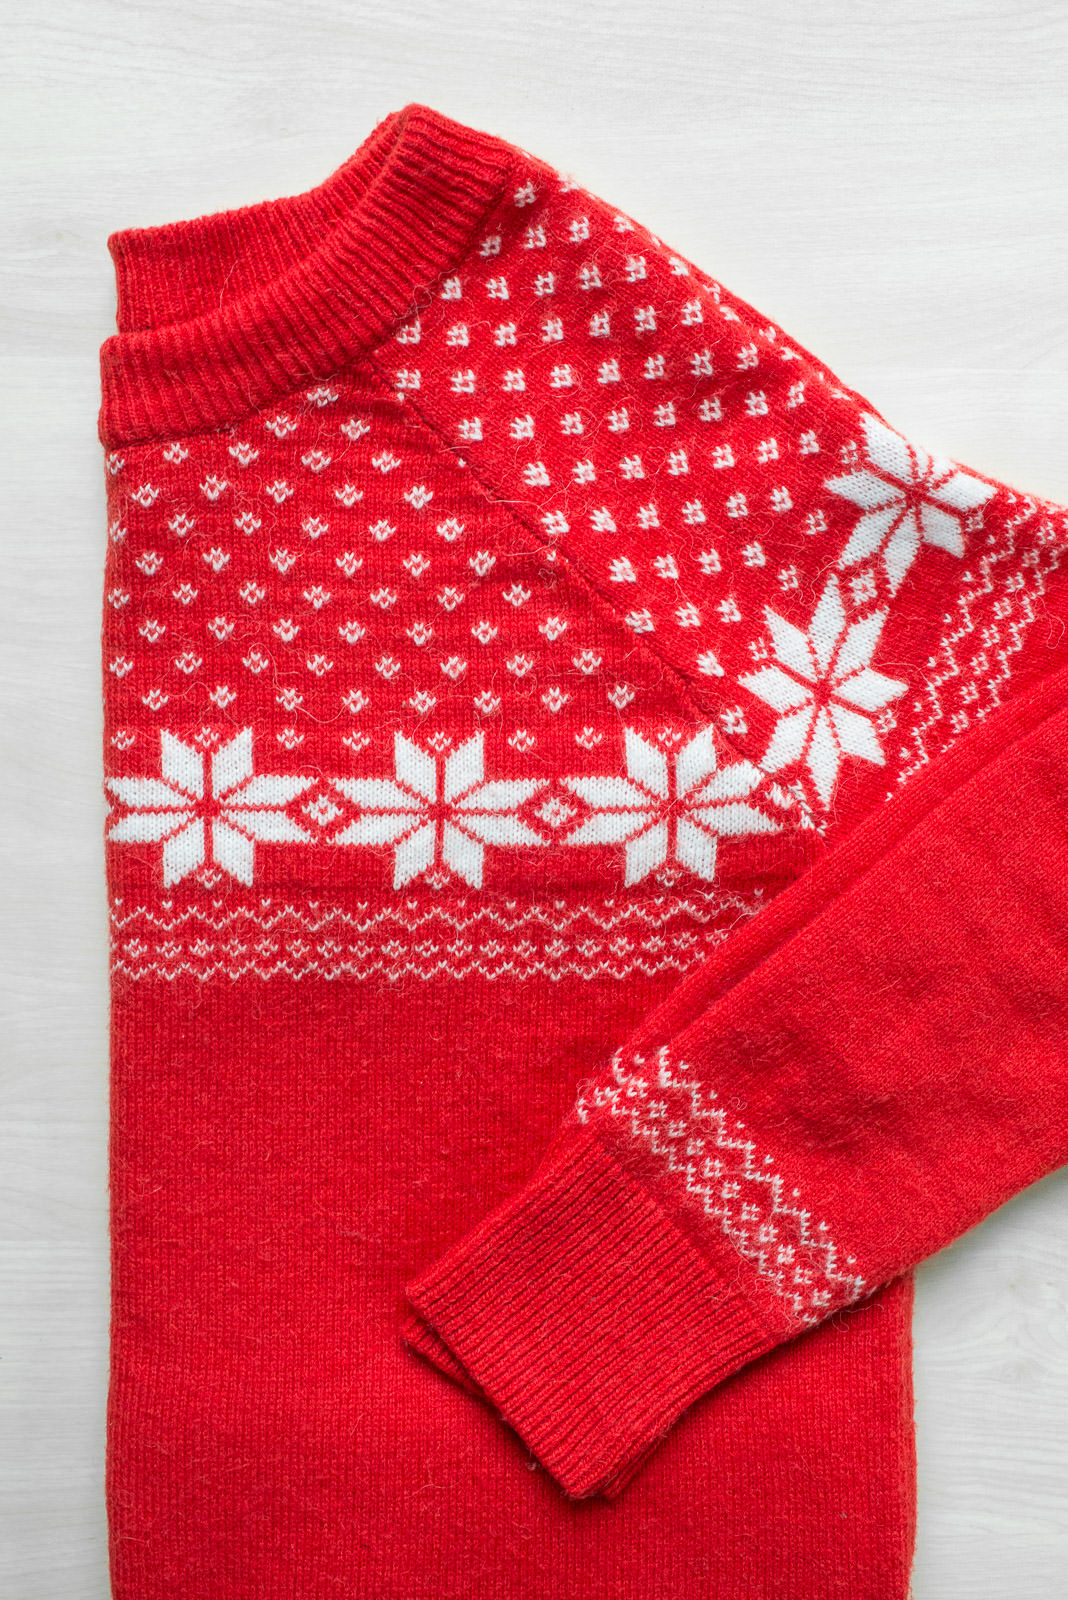 Blog-Mode-And-The-City-Lifestyle-5-petites-choses-111-pull-noël-hm